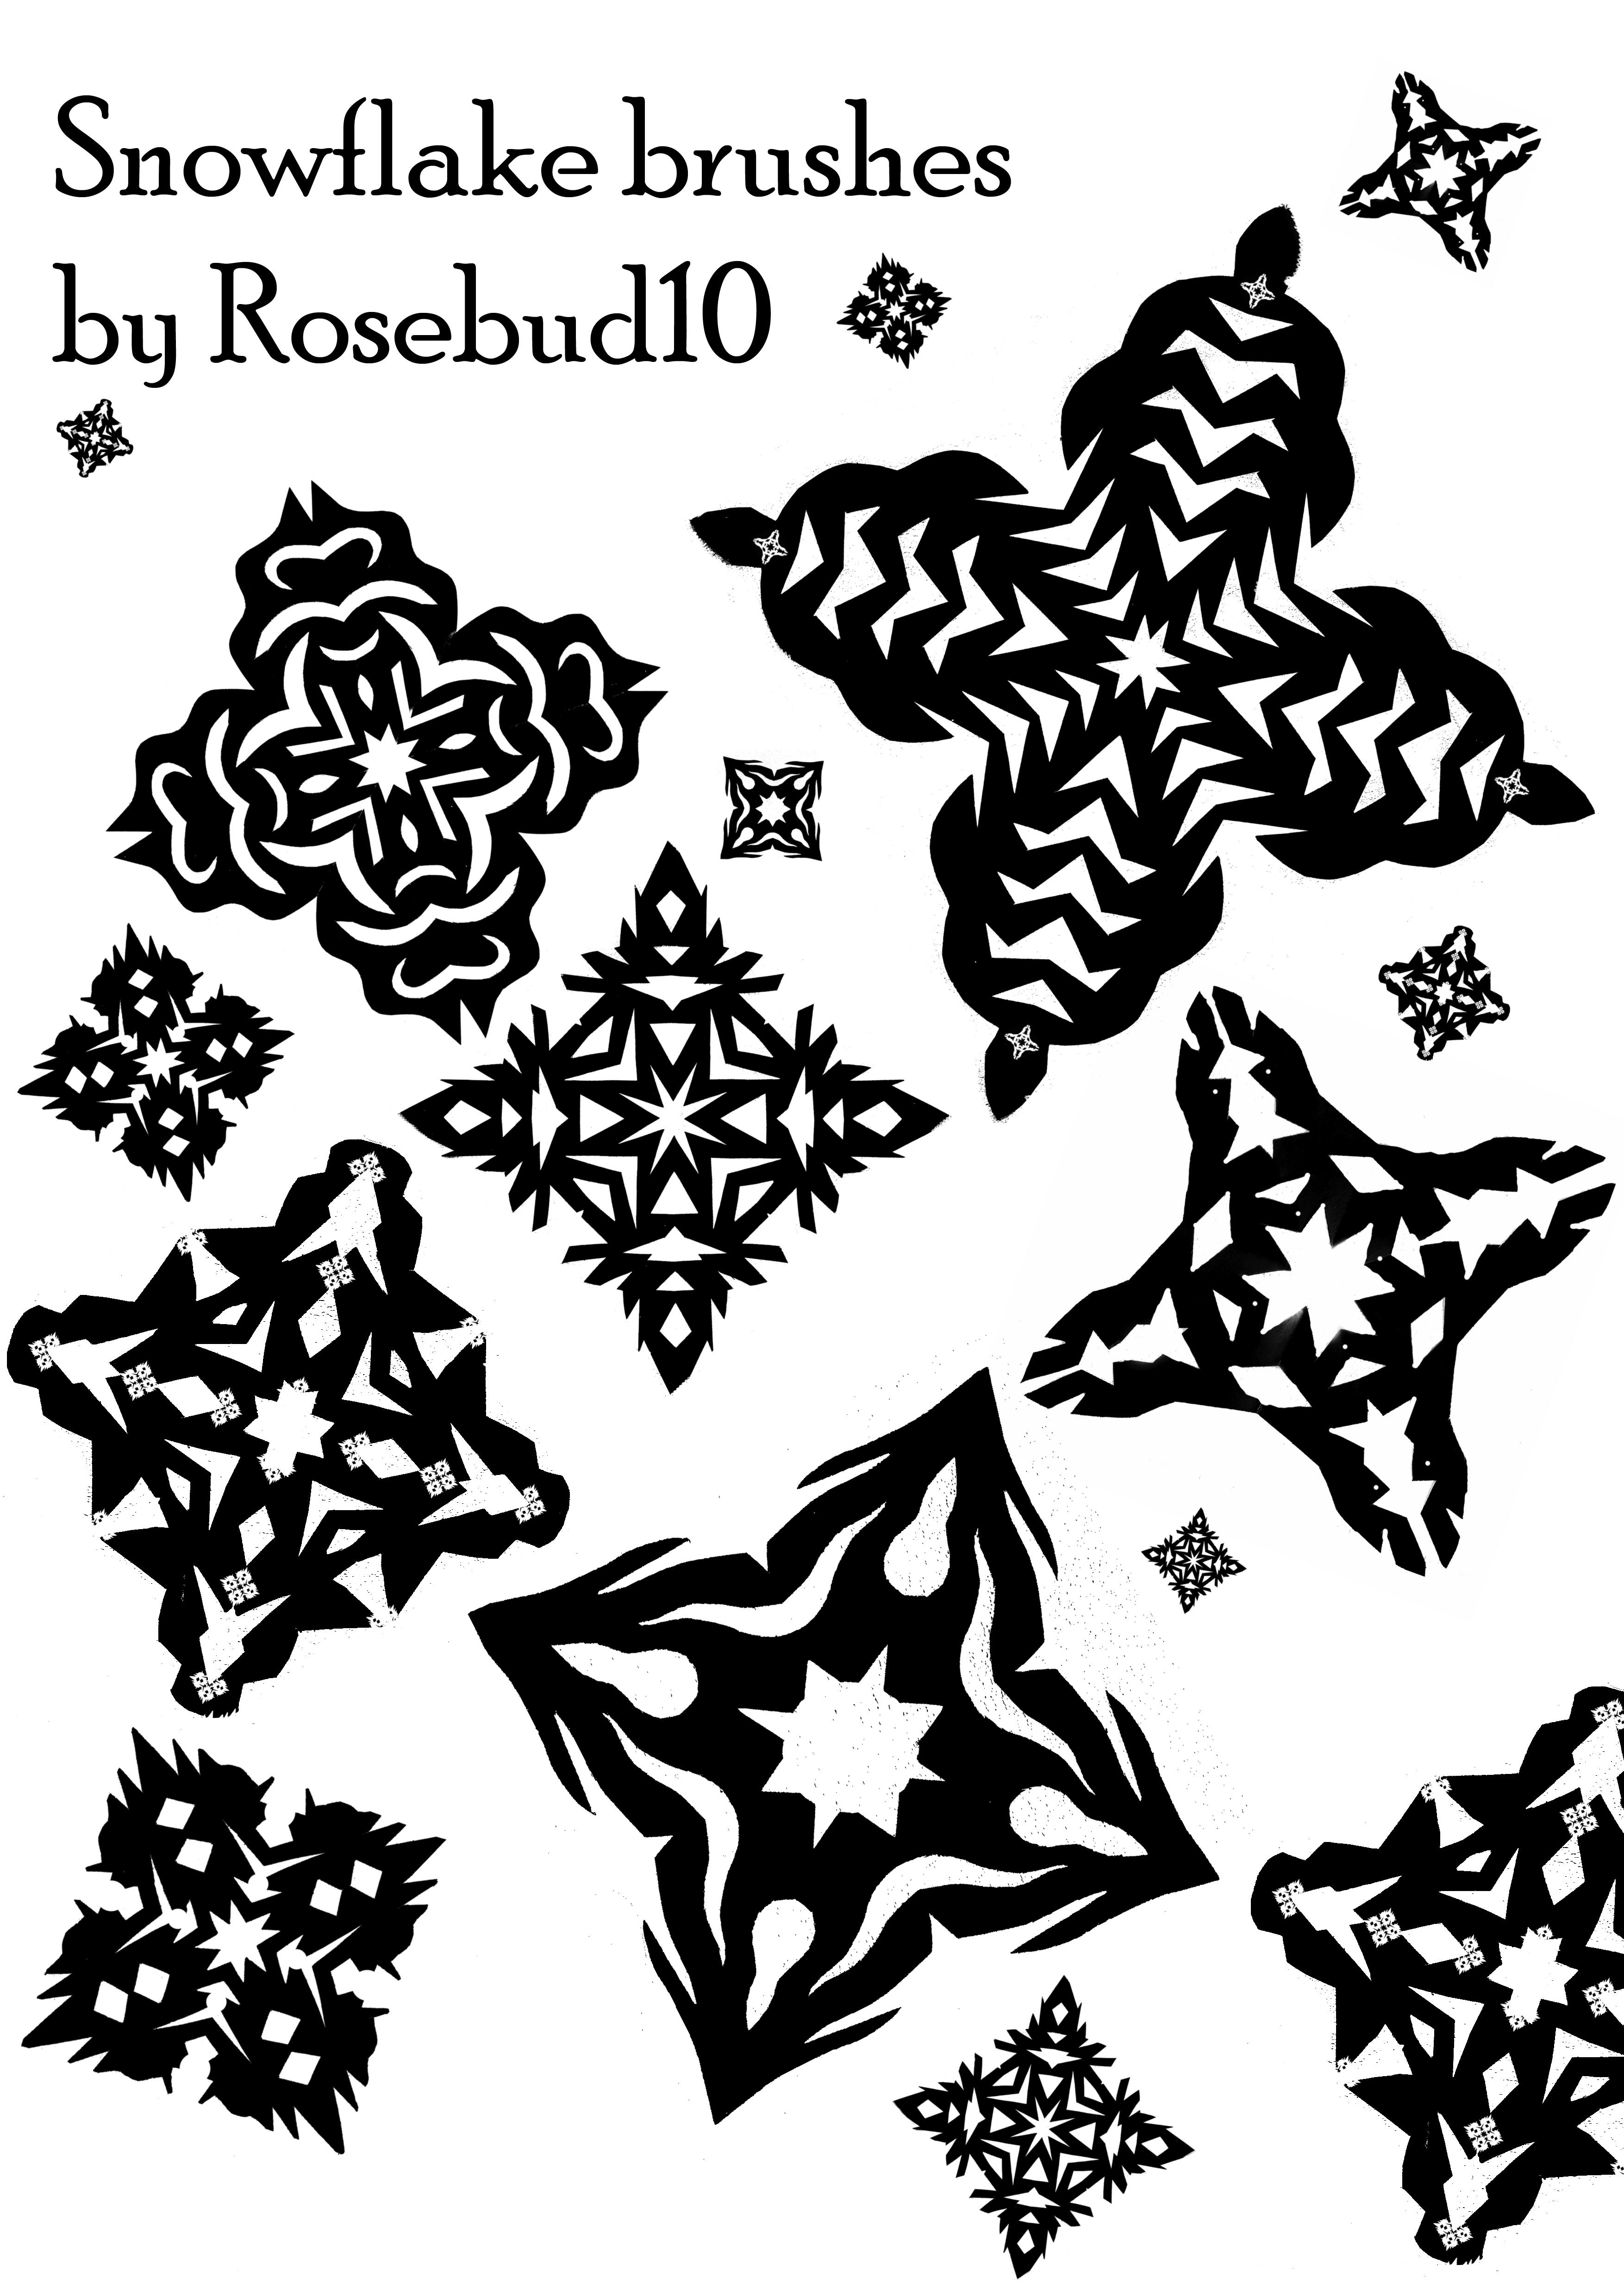 Snowflake brushes by rosebud10